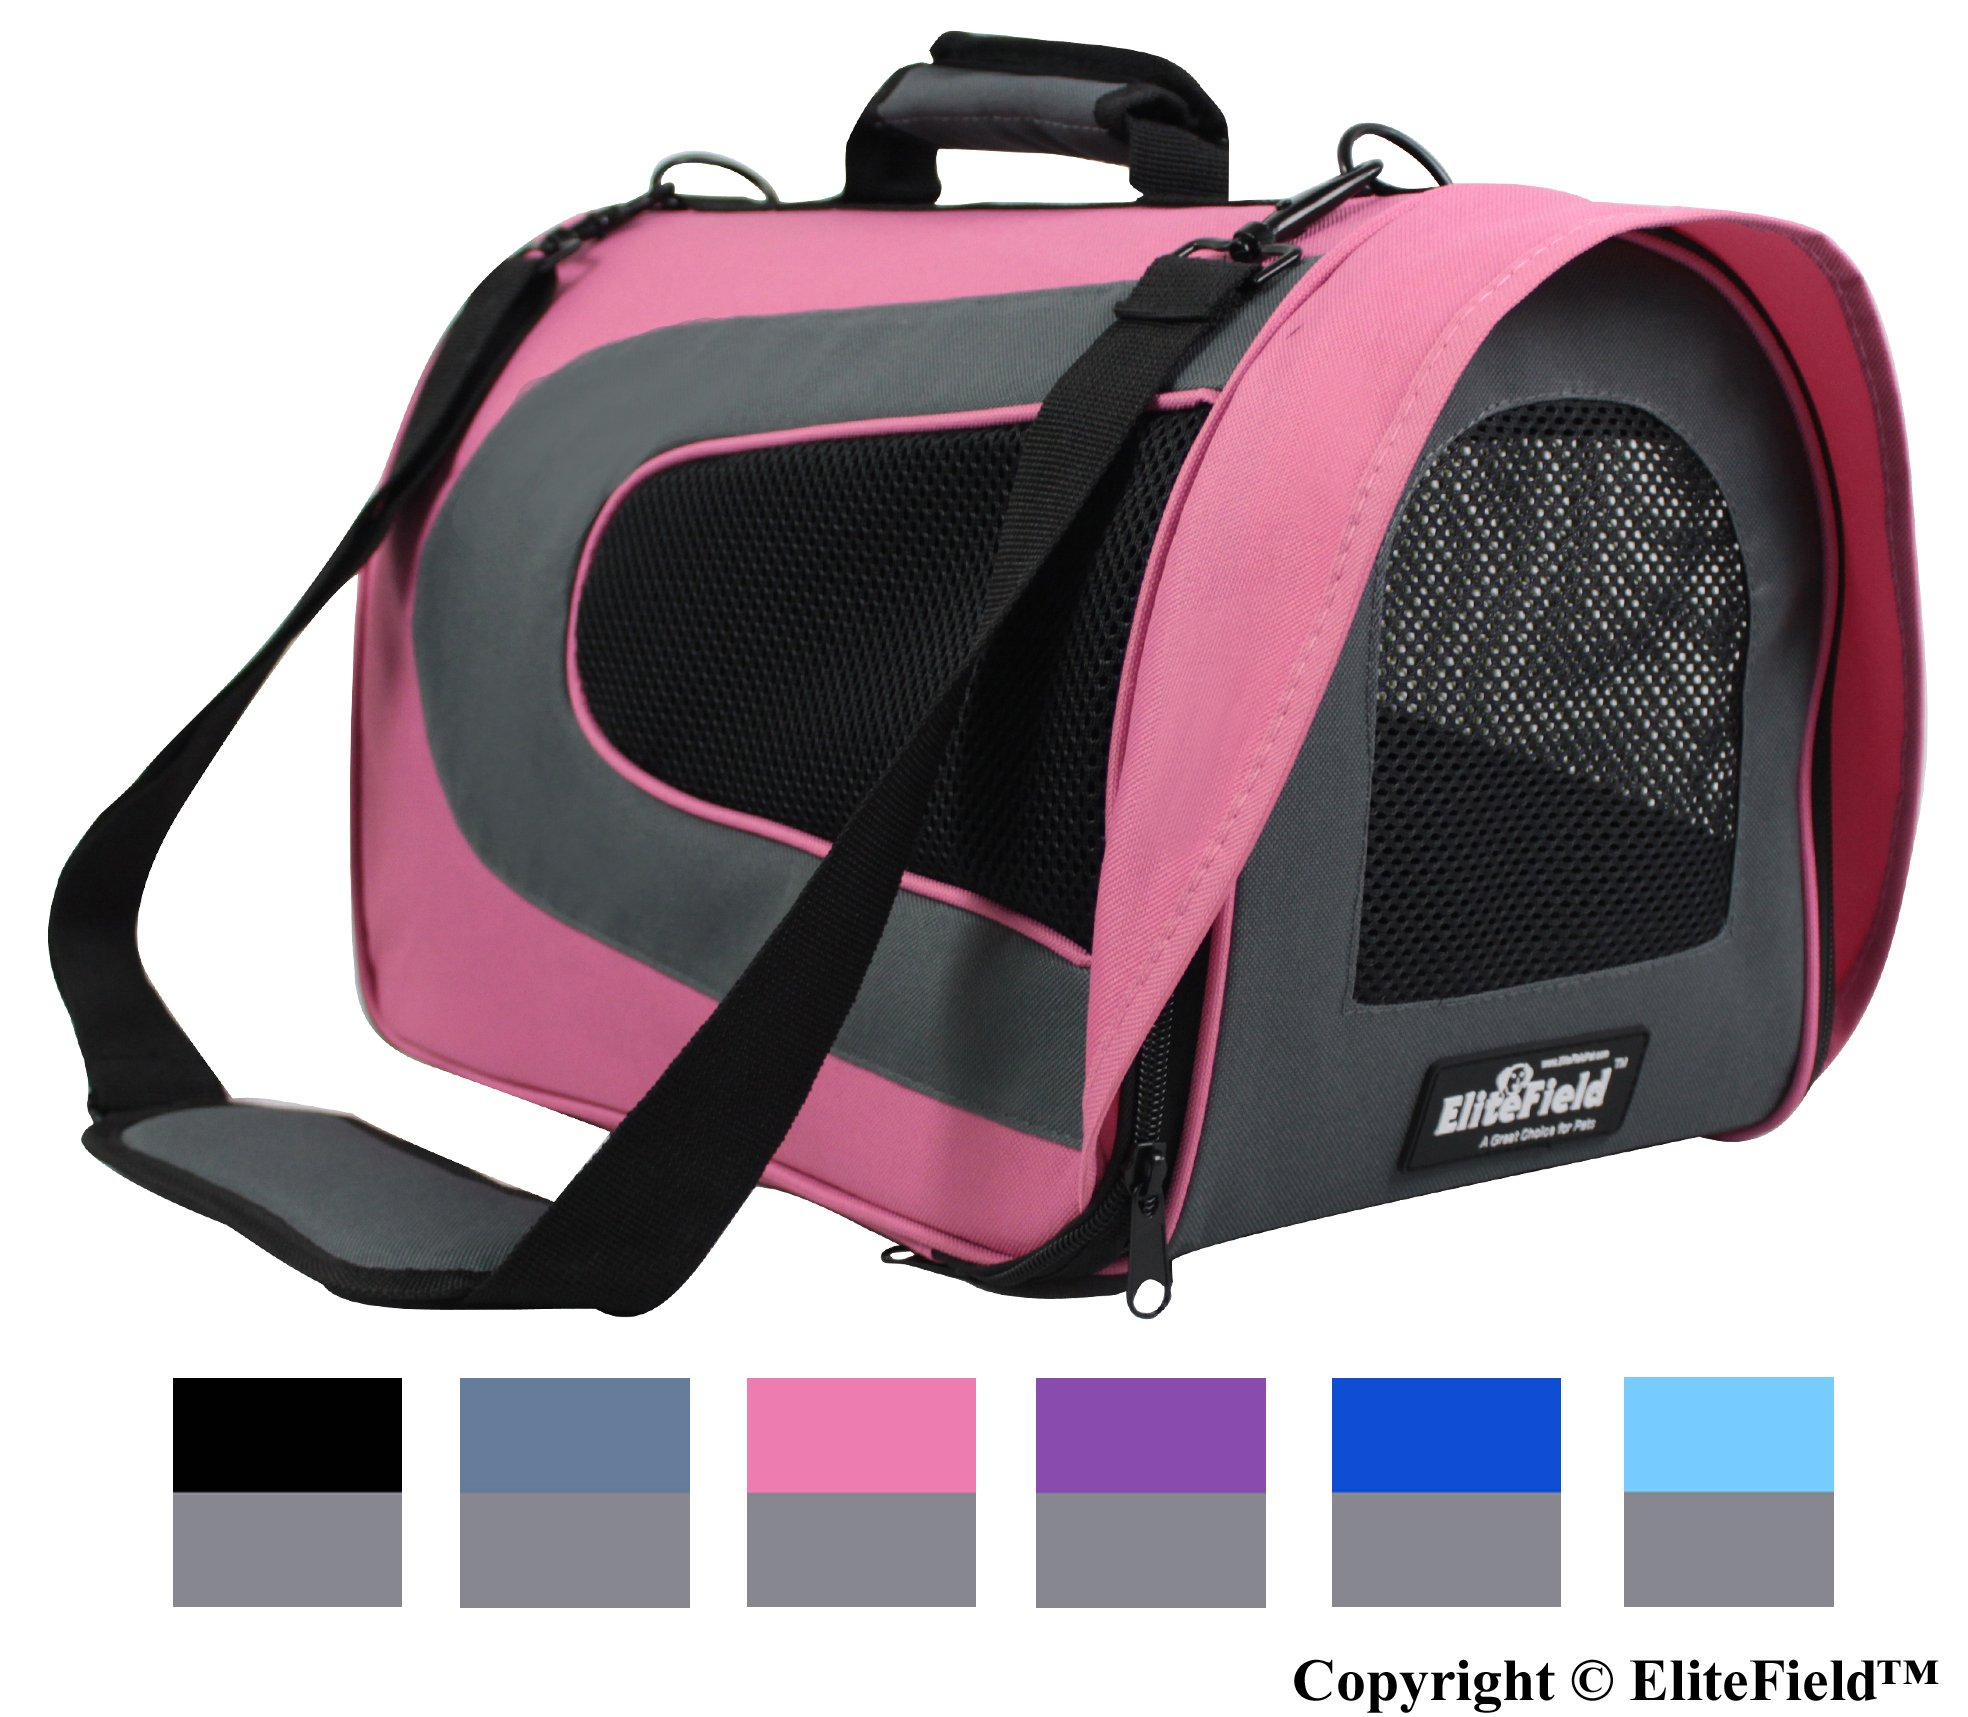 EliteField Airline Approved Soft Pet Carrier with Plush Bed for Dog and Cat, 18 L x 10 W x 11 H Inch, Pink/Gray